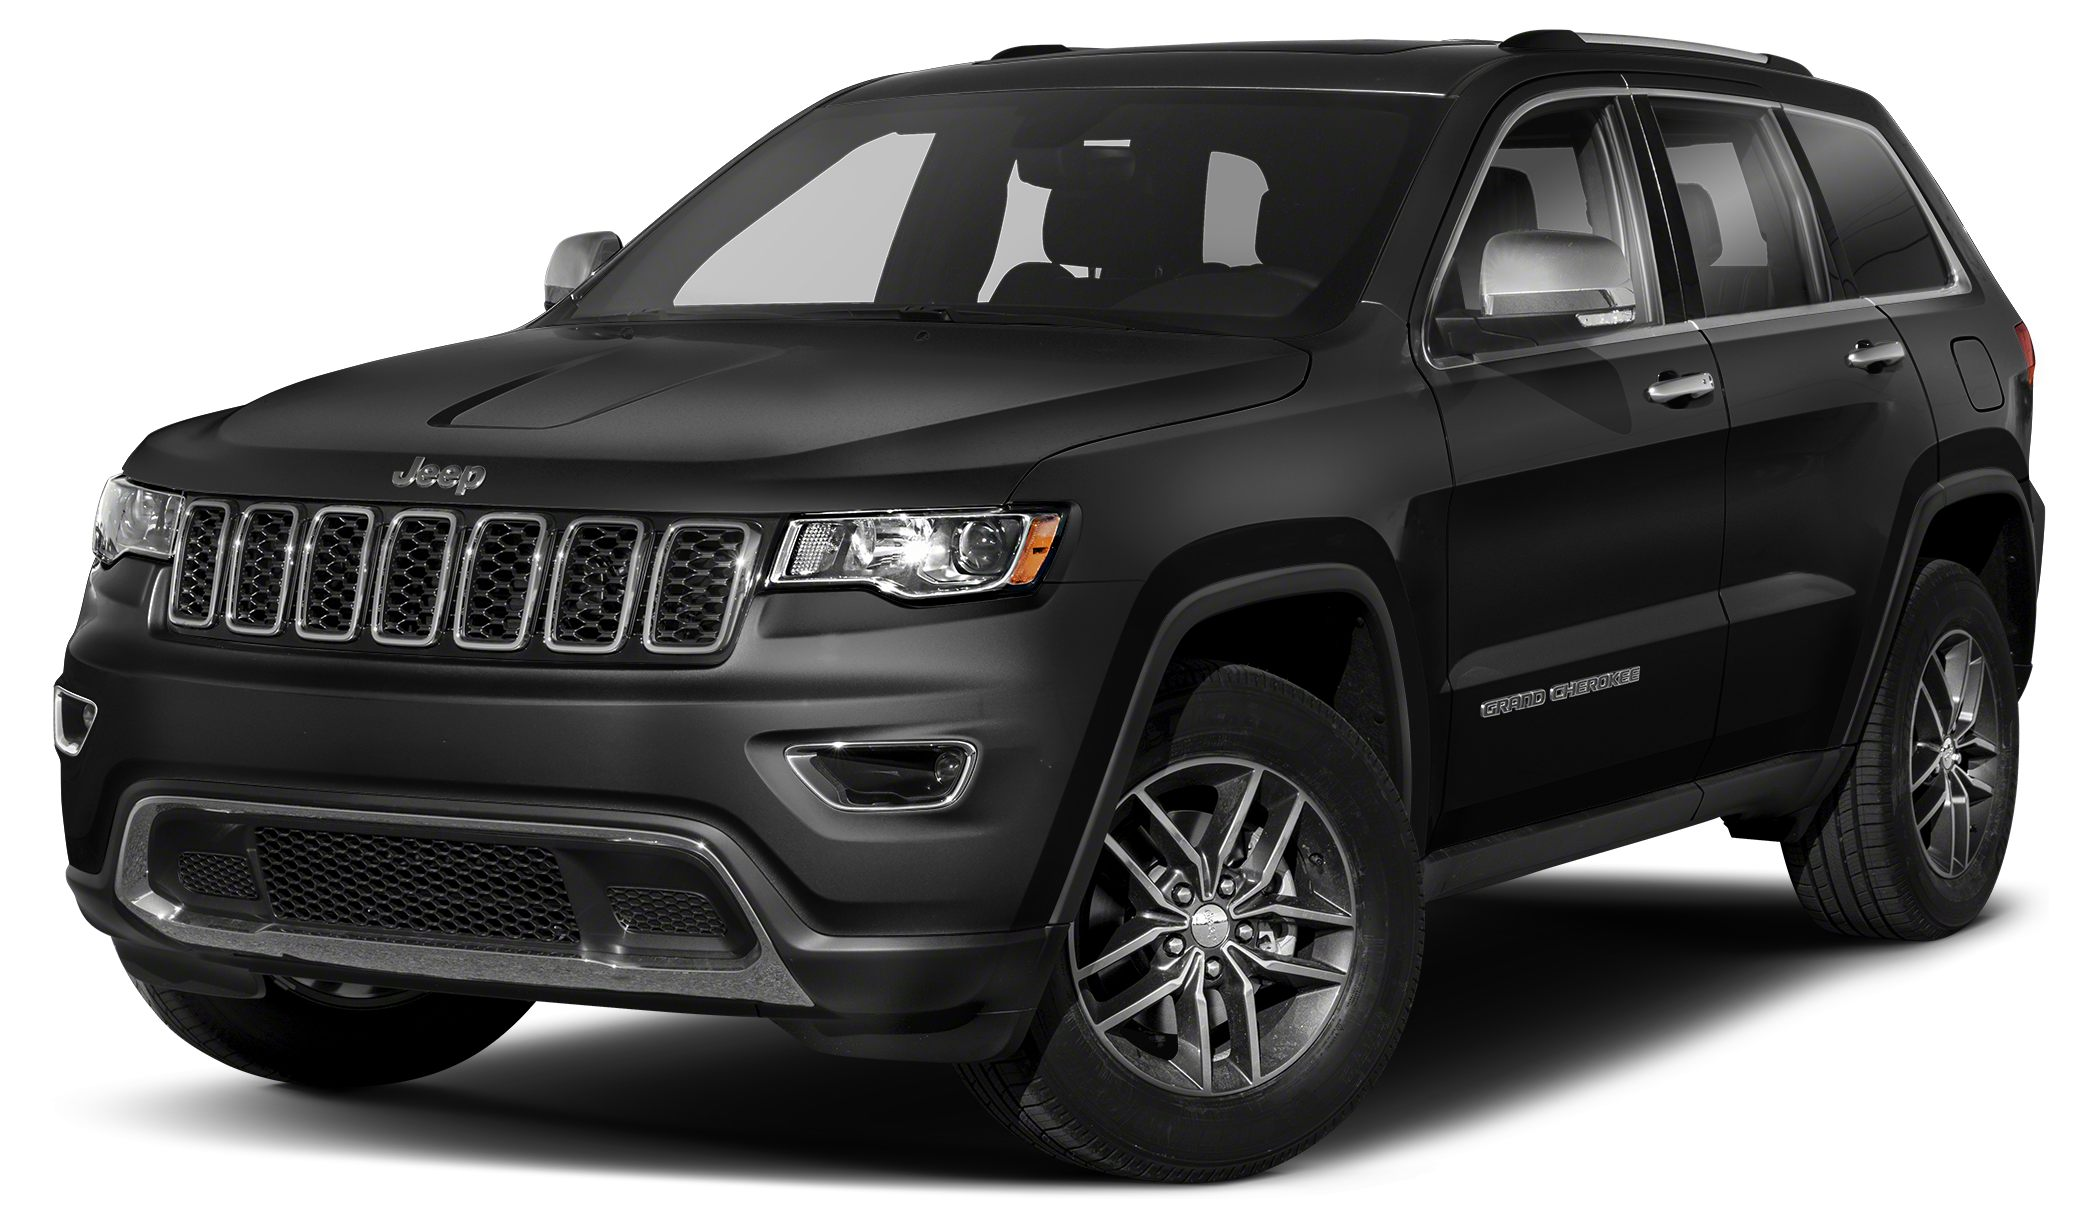 2018 Jeep Grand Cherokee Limited Miles 1Color Diamond Black Stock J1890 VIN 1C4RJFBG7JC21288